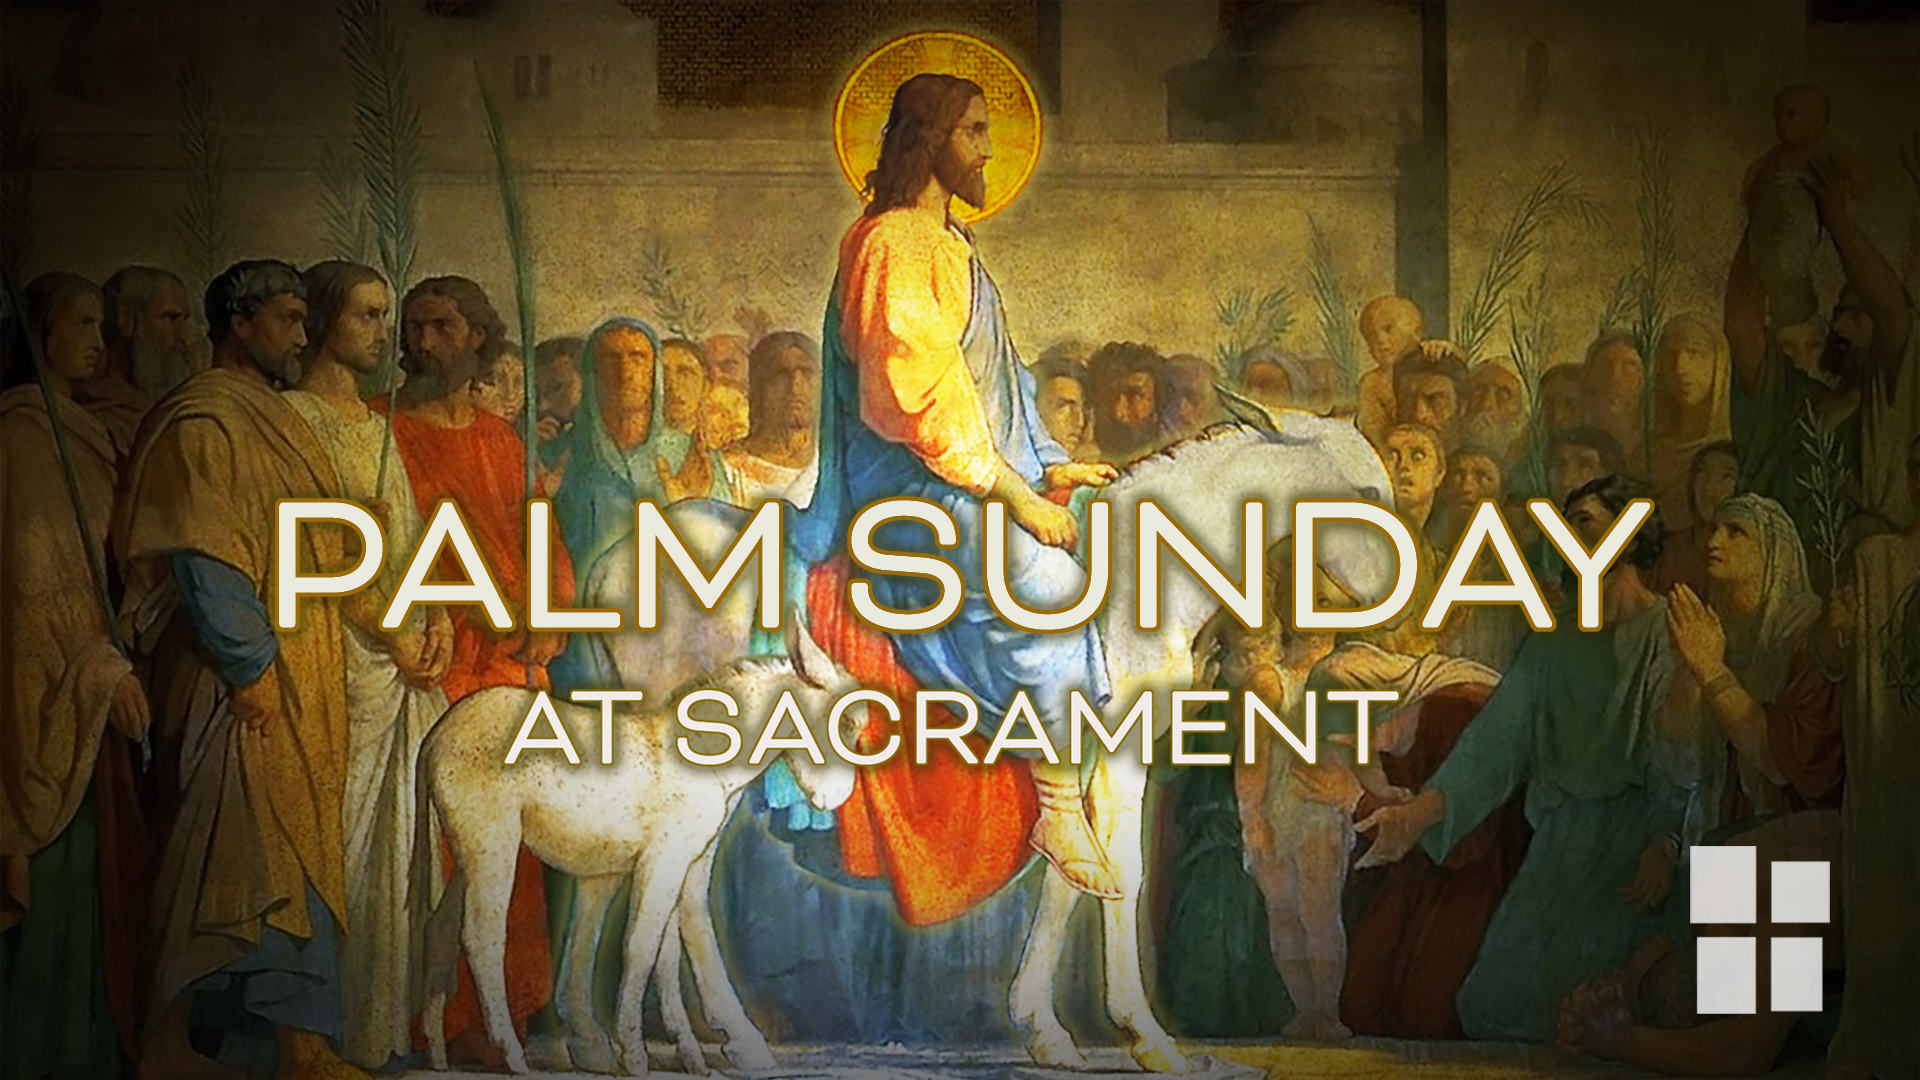 sacrament_palm_sunday_wide.JPG